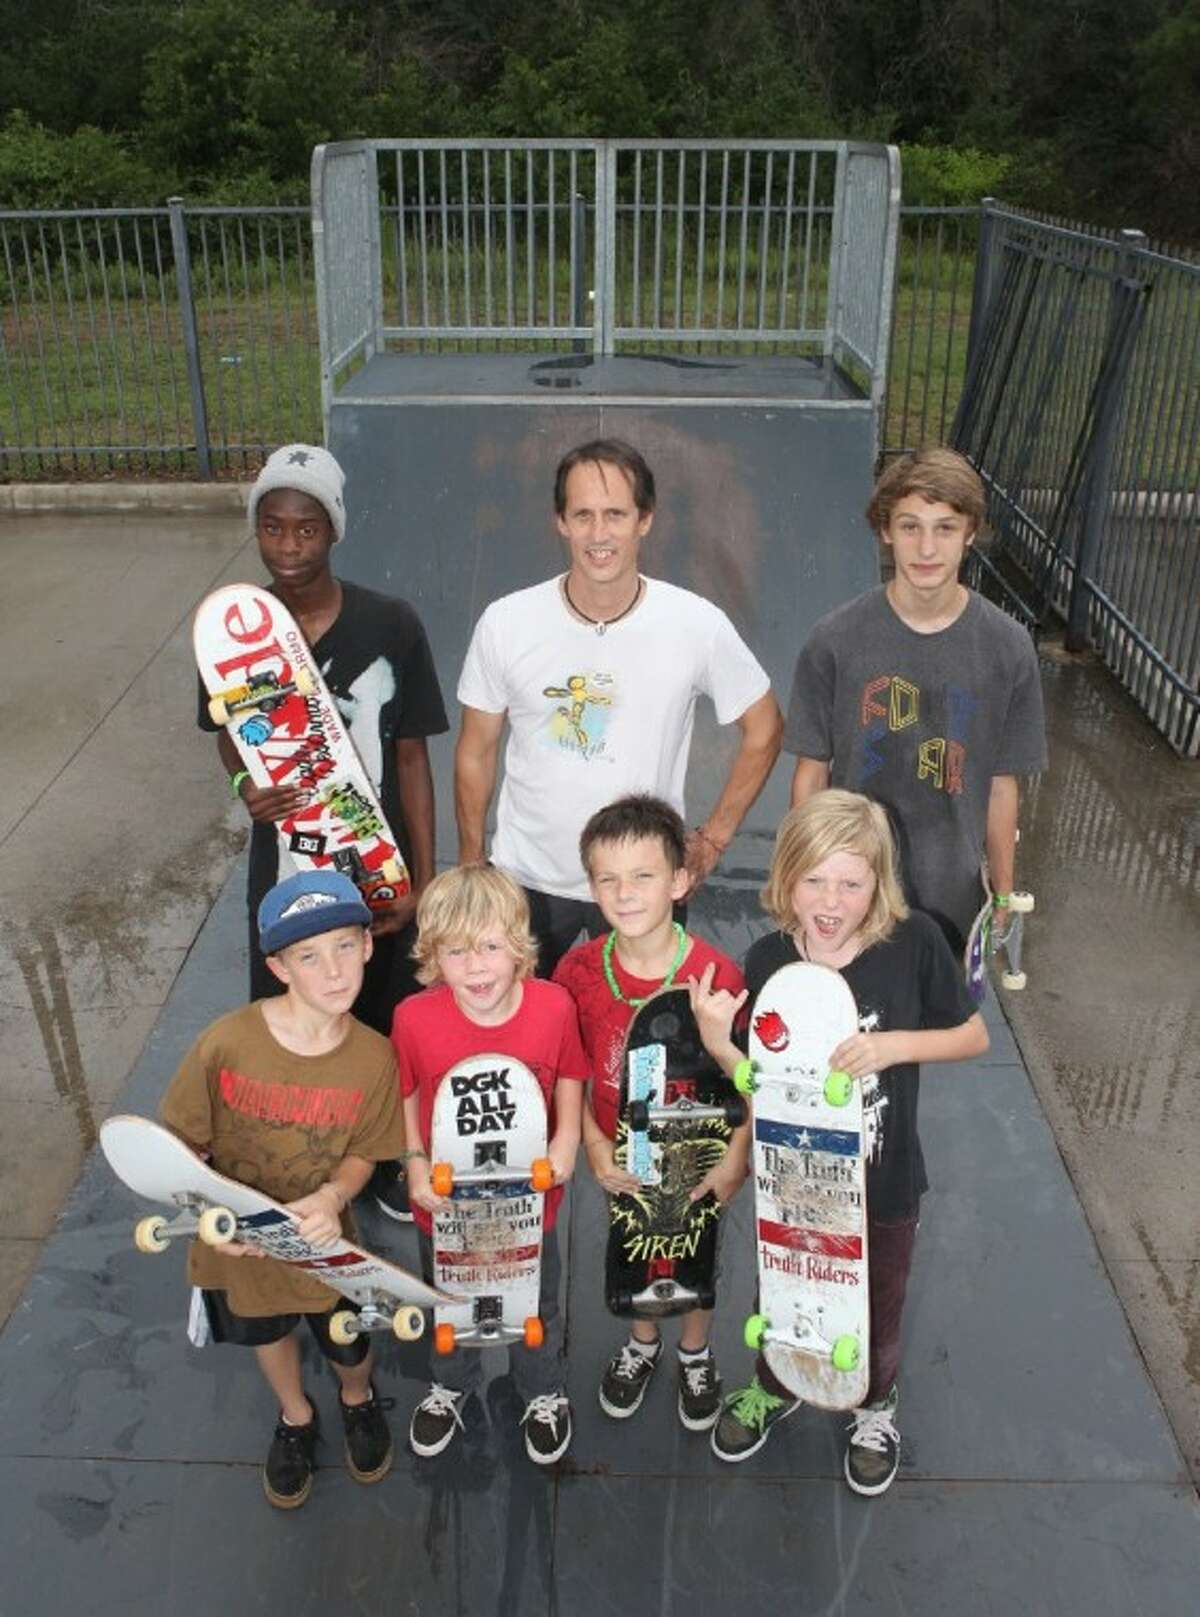 TruthRiders skate for a cause. (L to R front row) Jackson Hocutt, 8, Max Neely, 6, Ian Hocutt, 8, Hudson Neely, 9. ( L to R back row) Kevin Storm ,14, Skate Park Director John Hocutt, and Andrew Fryer,14.